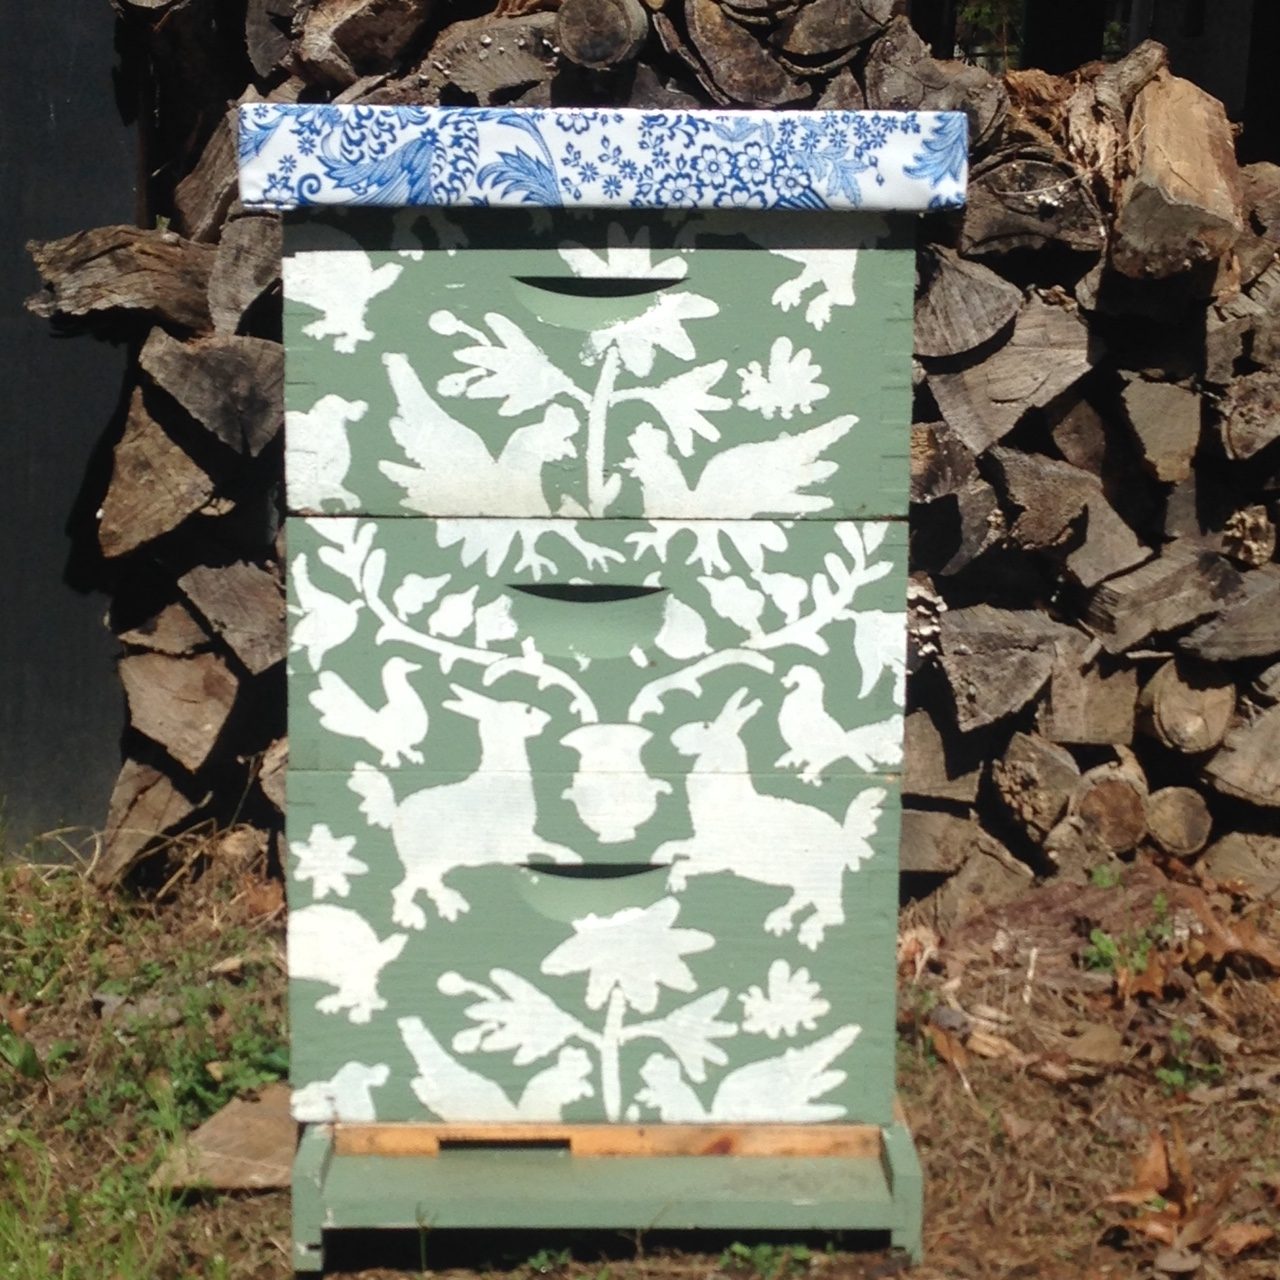 Beehive (commercial stencil used).